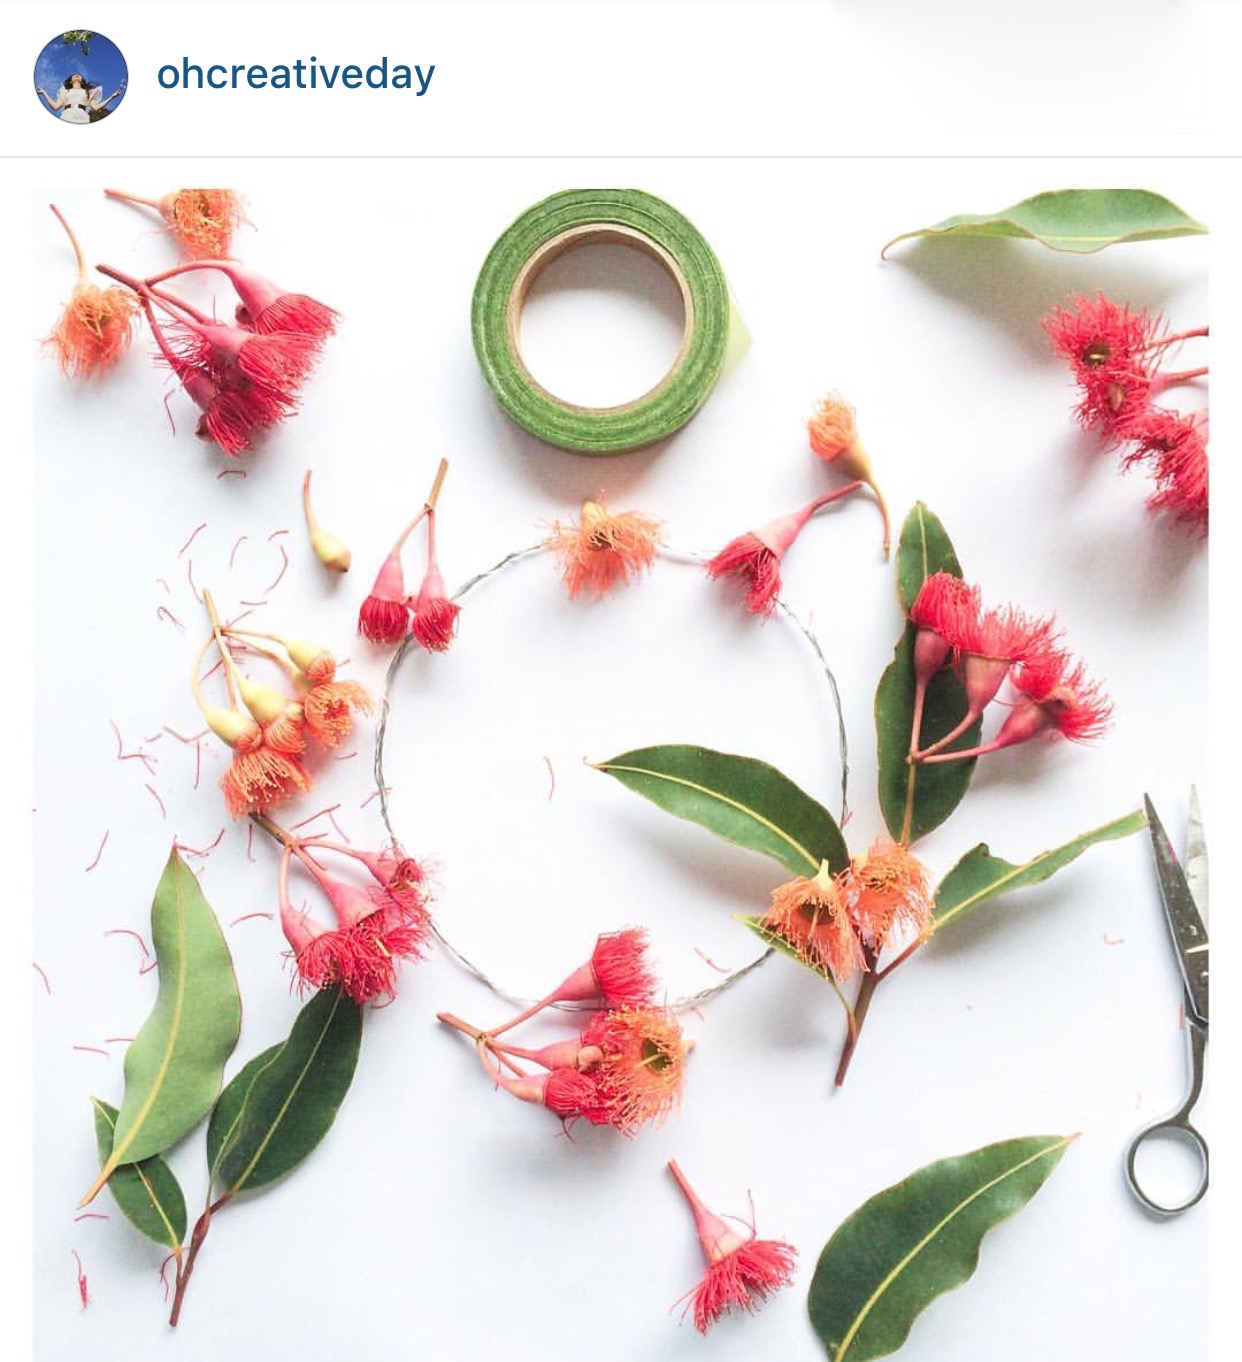 photography in Instagram - Flat Lay